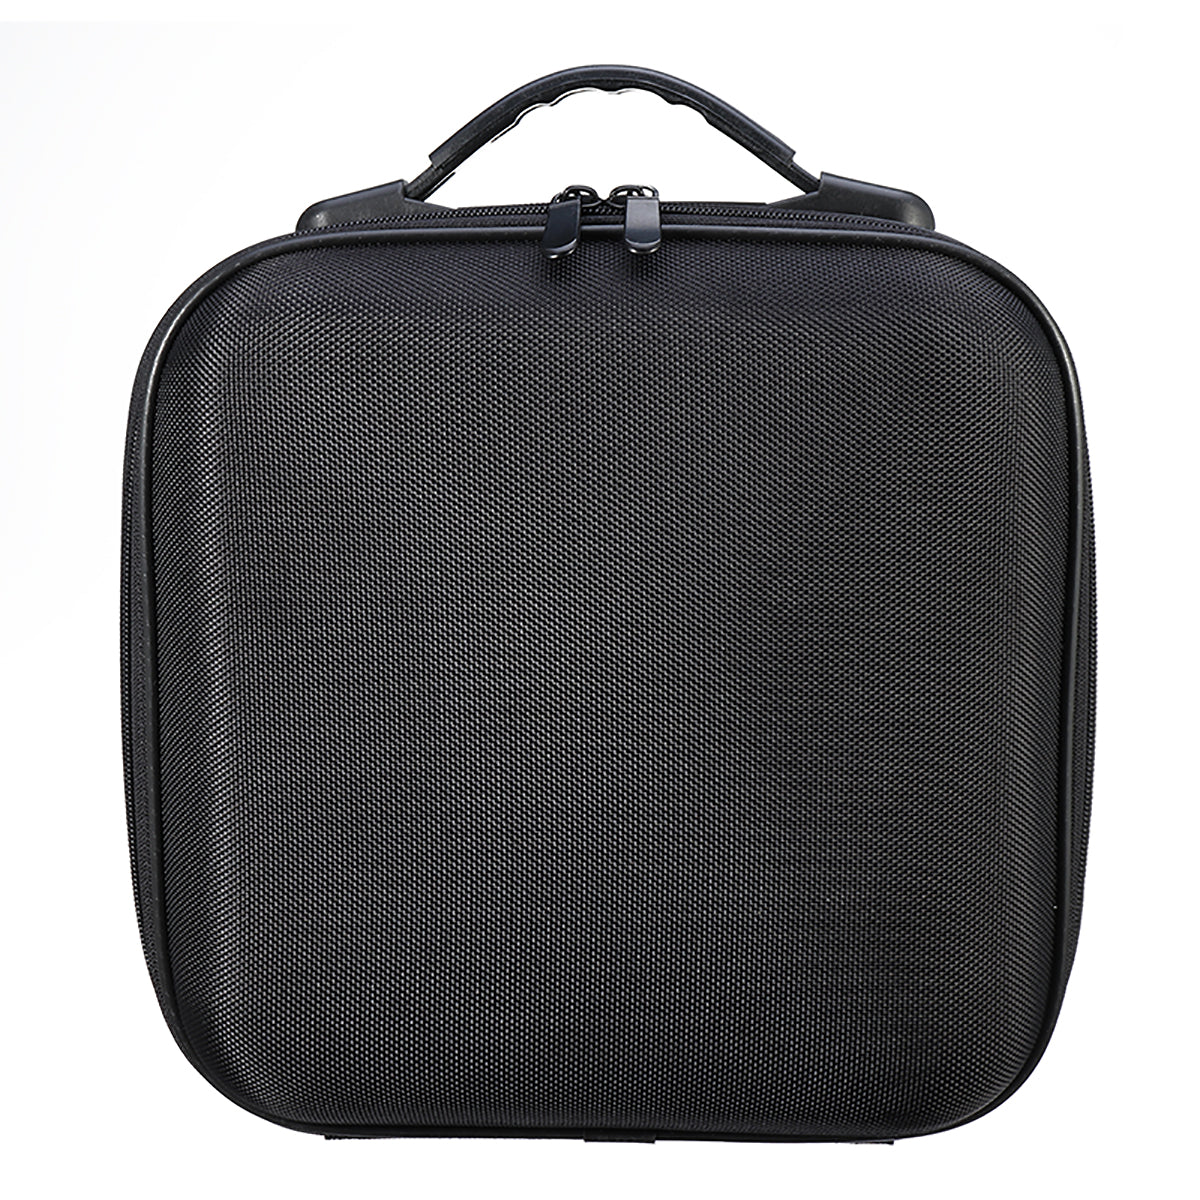 Portable Waterproof Storage Bag Carrying Case Box Handbag for VISUO XS812 RC Drone Quadcopter